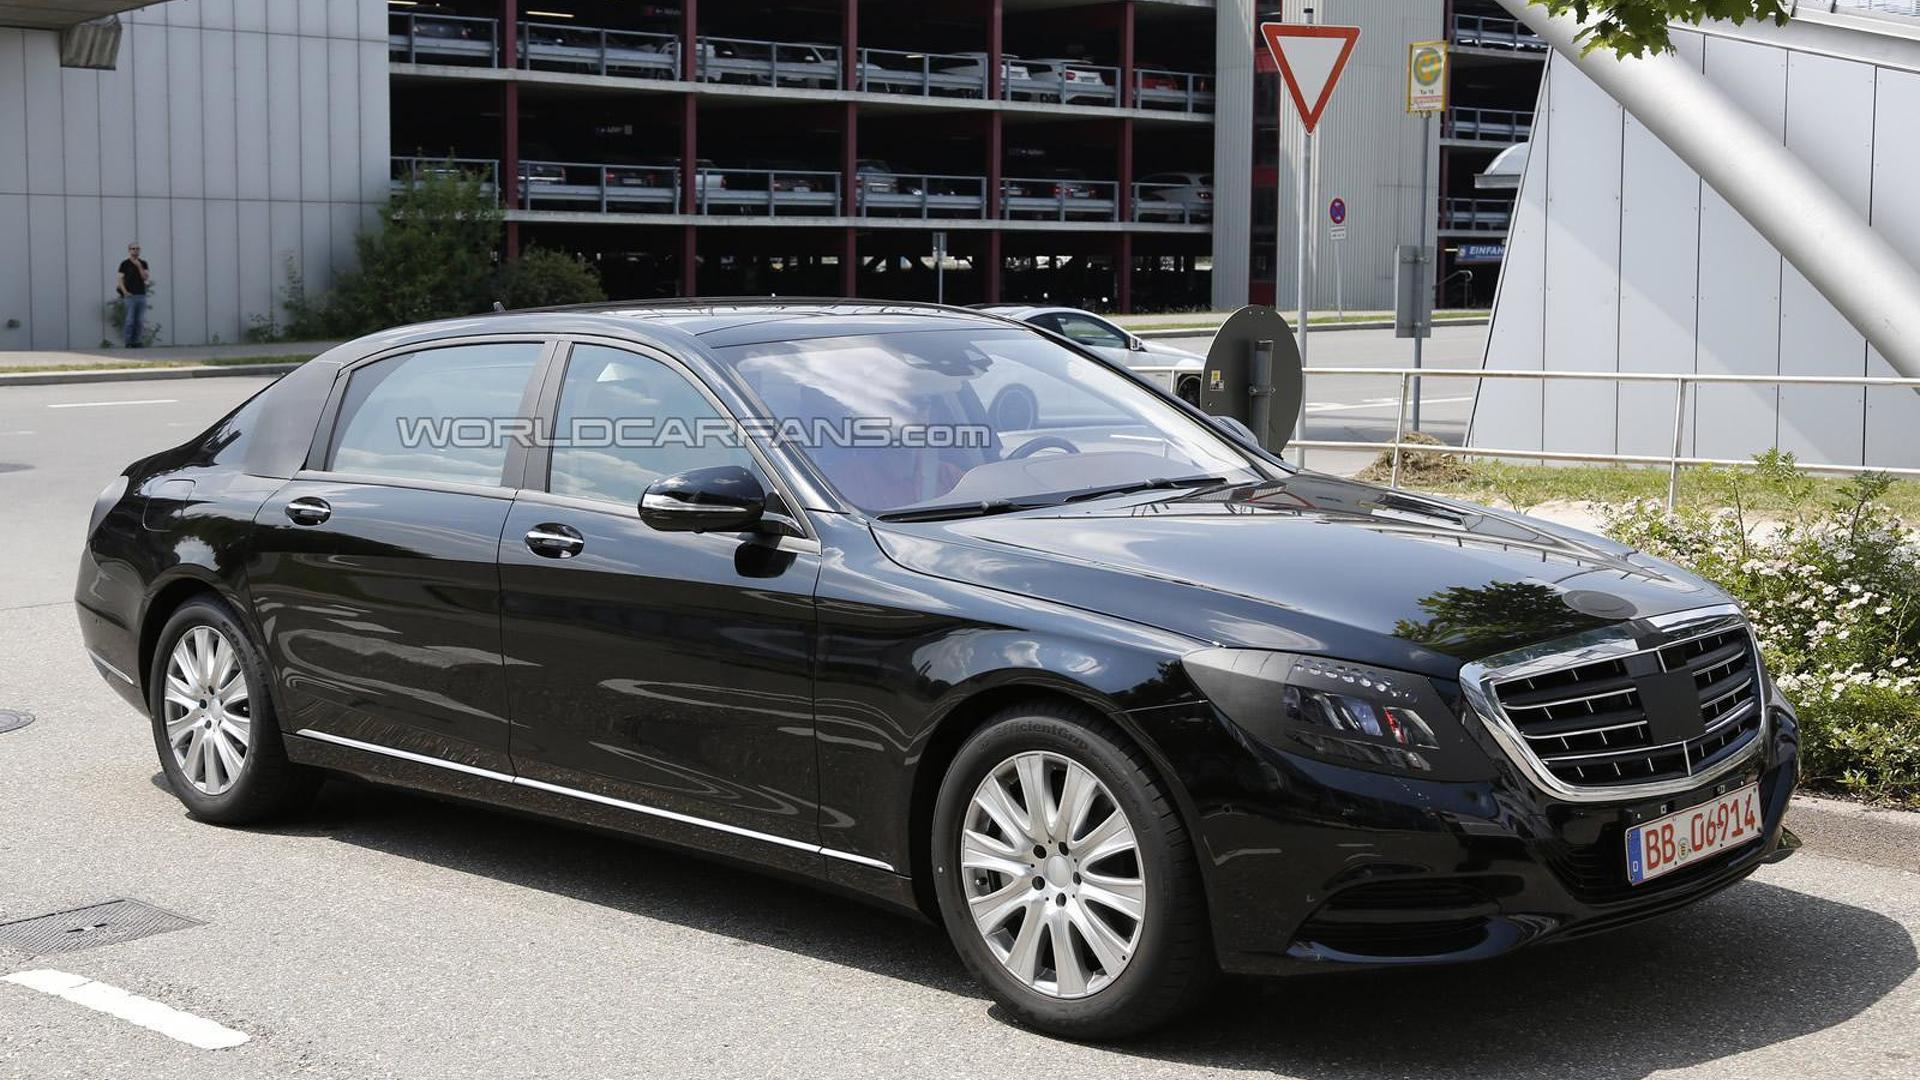 2014 Mercedes-Benz S-Class Pullman to have 2+2+2 seating - report